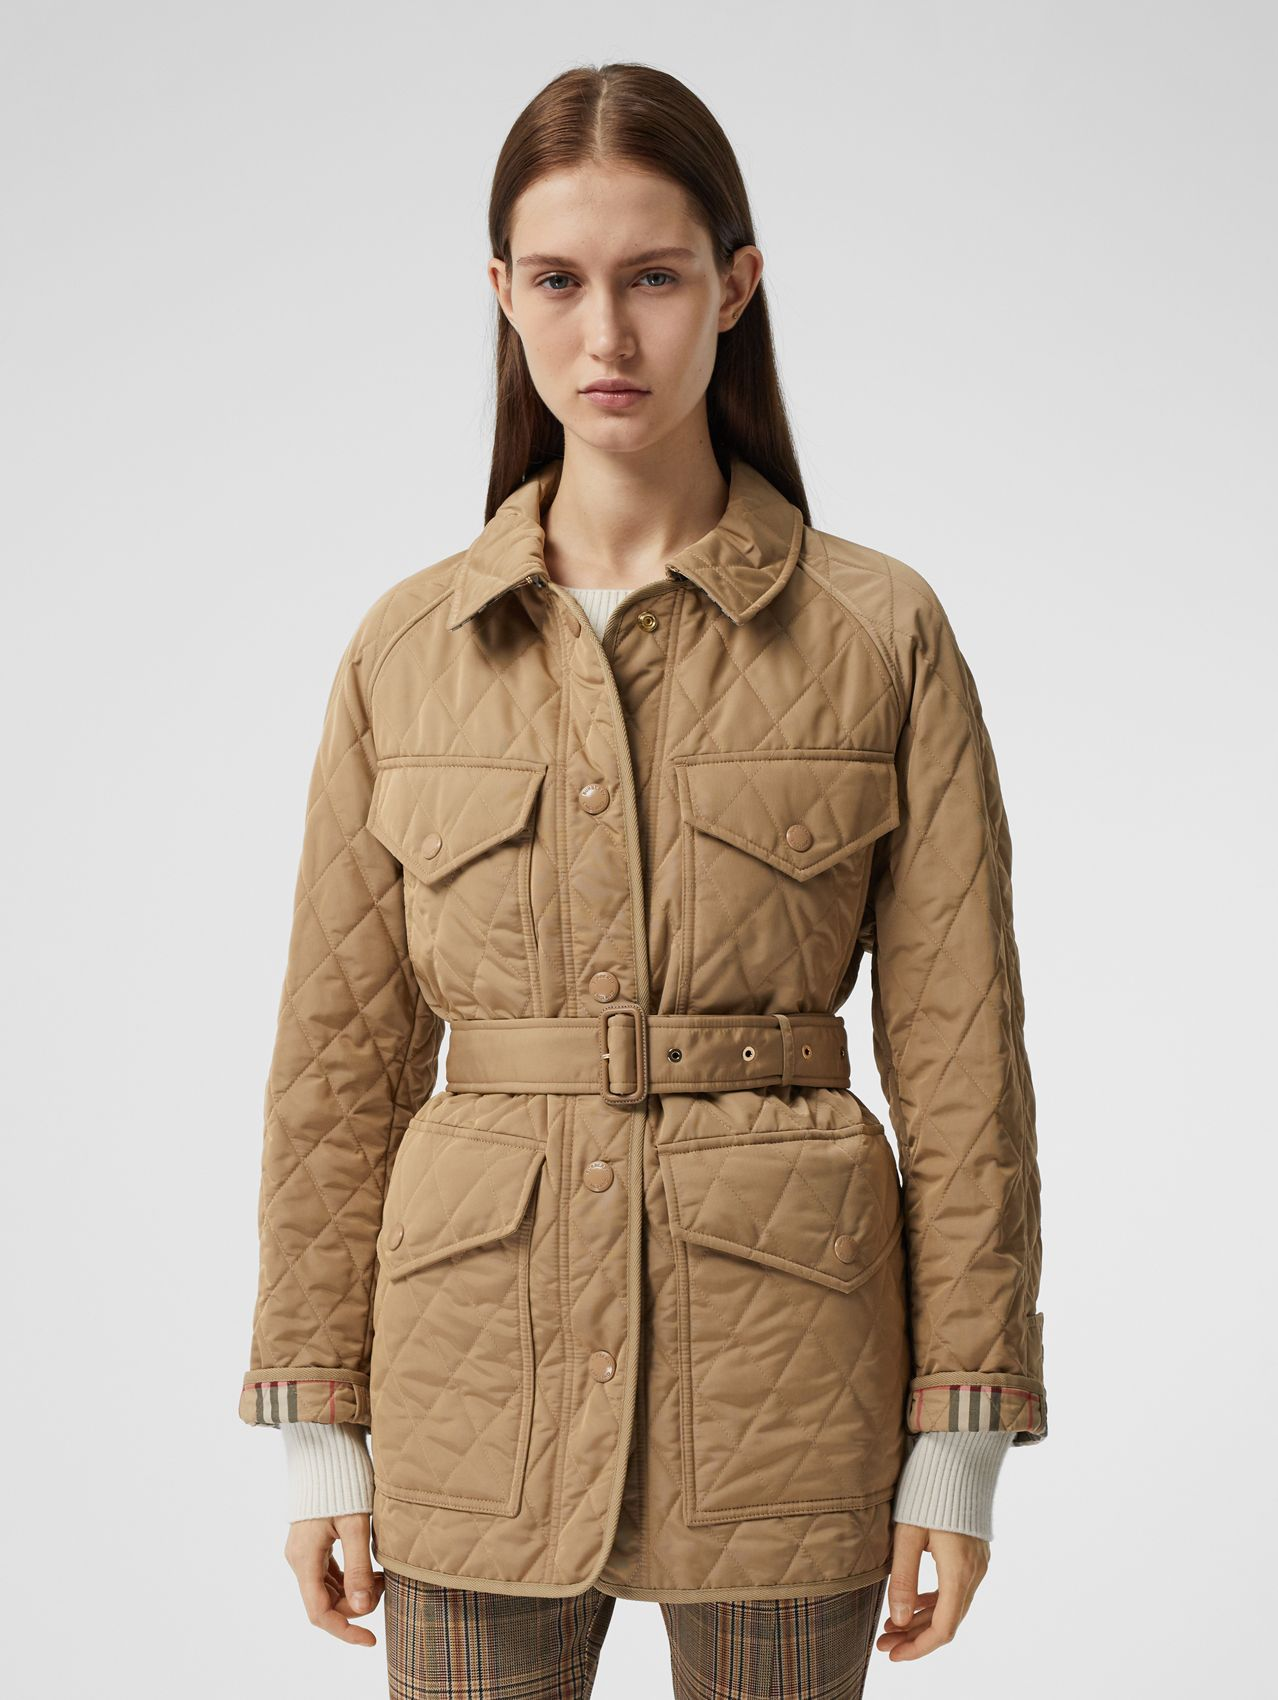 Diamond Quilted Nylon Canvas Field Jacket in Archive Beige